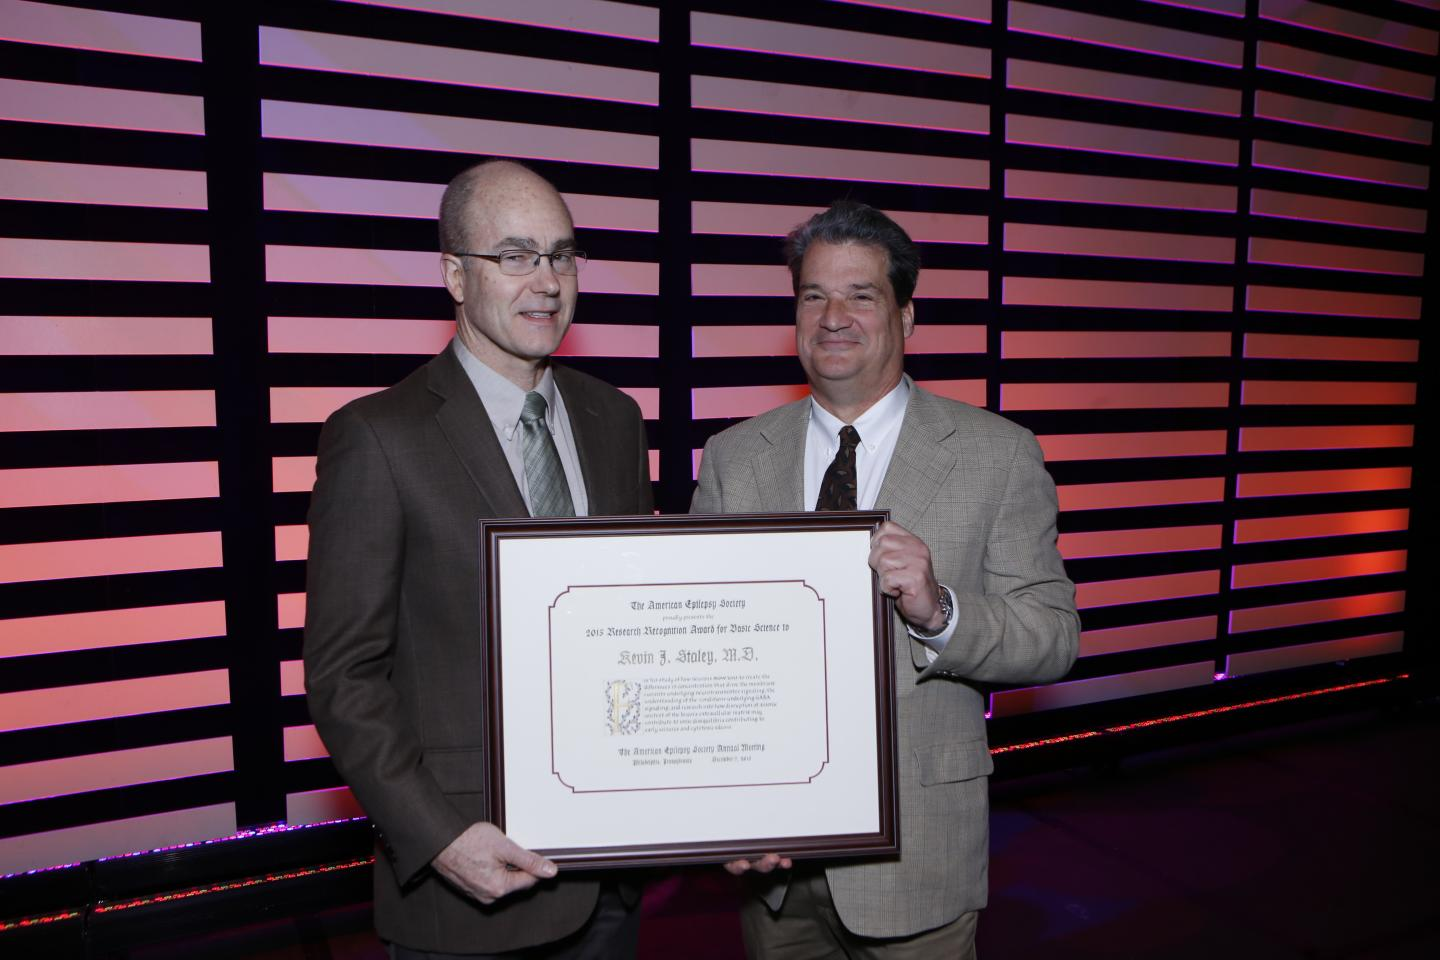 AES Presents Kevin Staley, M.D., with its 2015 Research Recognition Award for Basic Science